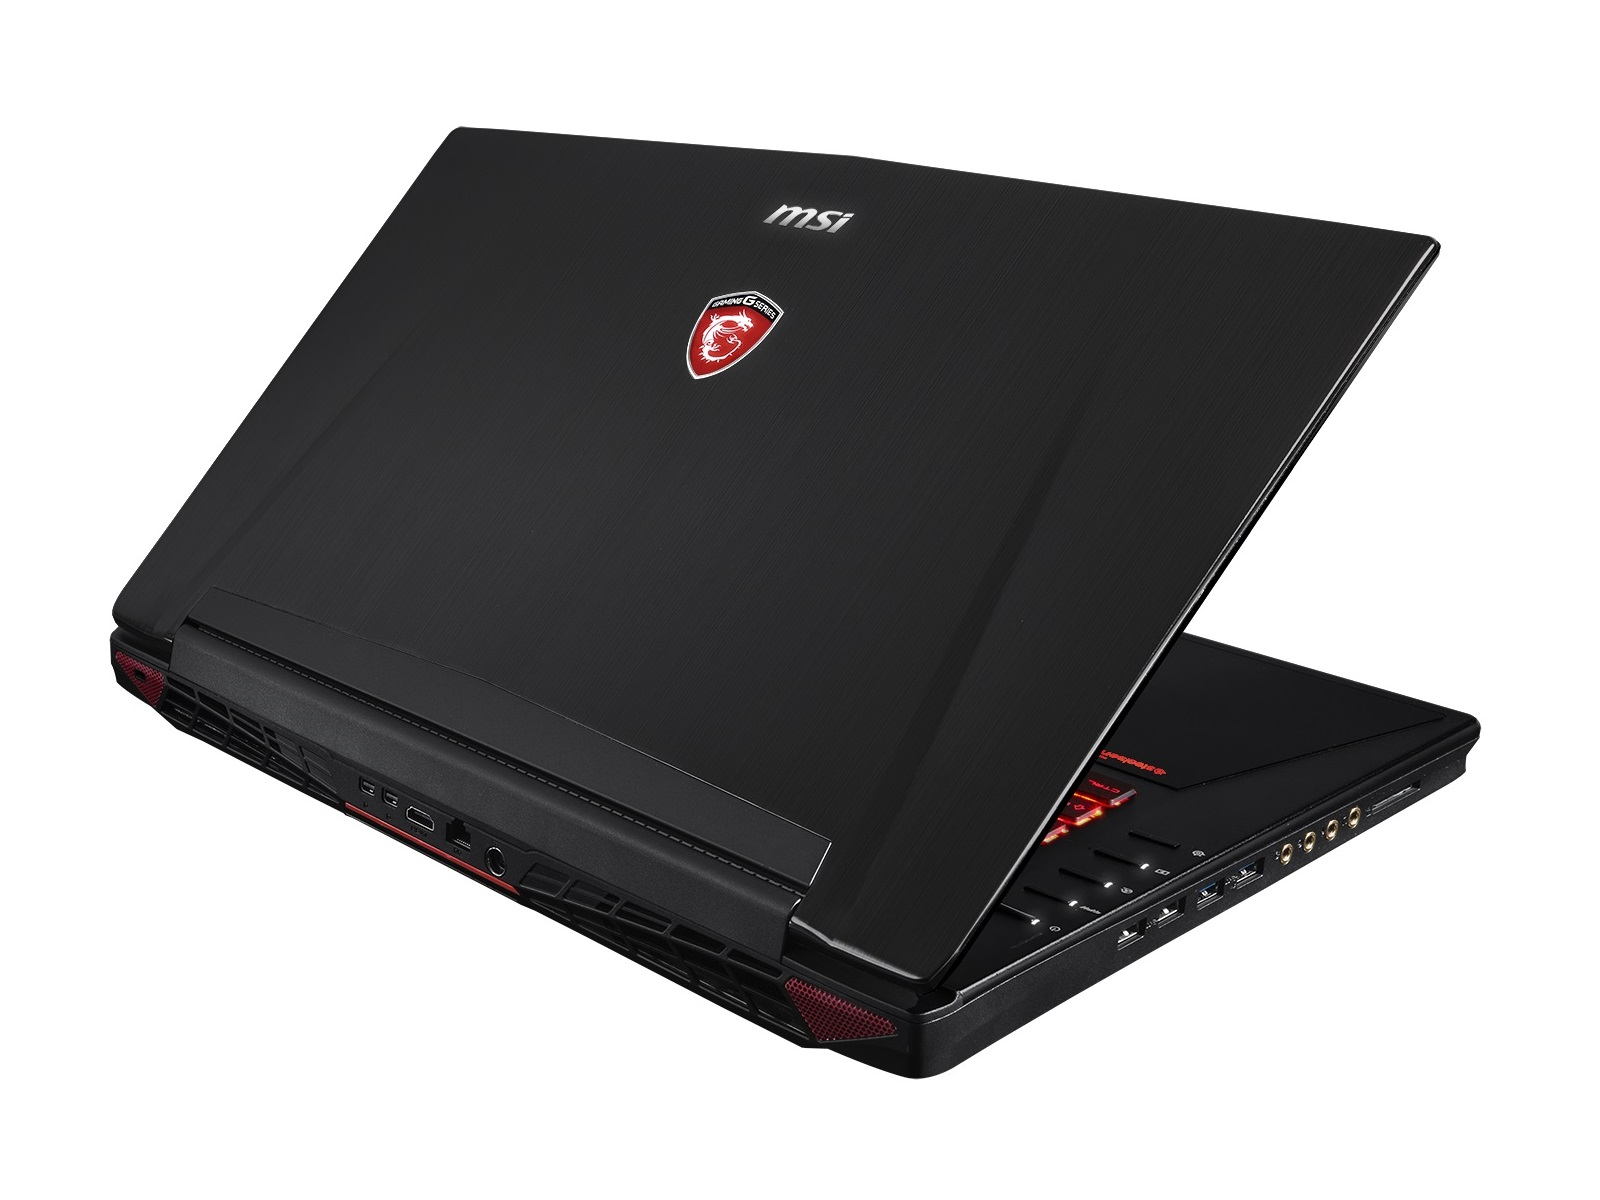 MSI GT72 DOMINATOR DRAGON EDITION WINDOWS 7 X64 DRIVER